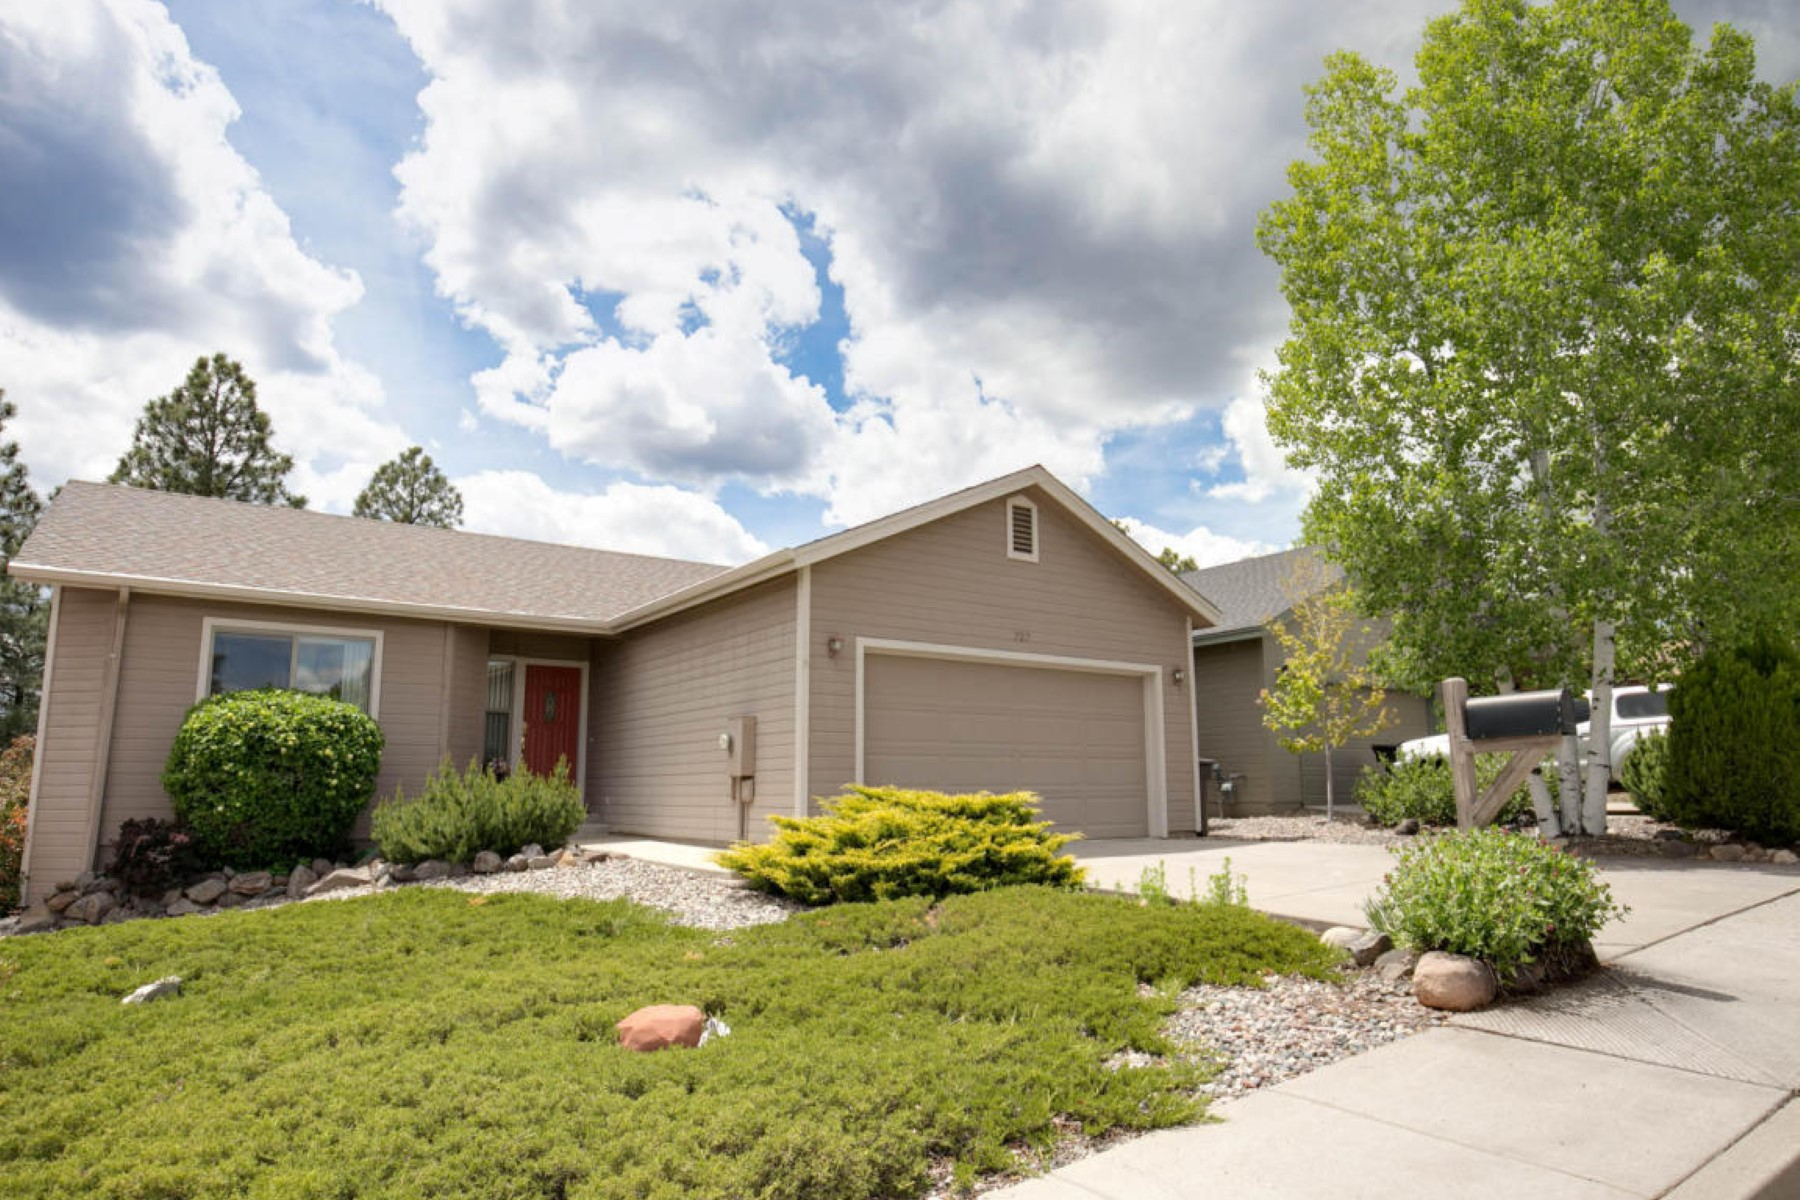 Single Family Home for Sale at Spectacular home backing acres of wooded greenbelt space 727 N Pine Cliff Dr Flagstaff, Arizona, 86001 United States